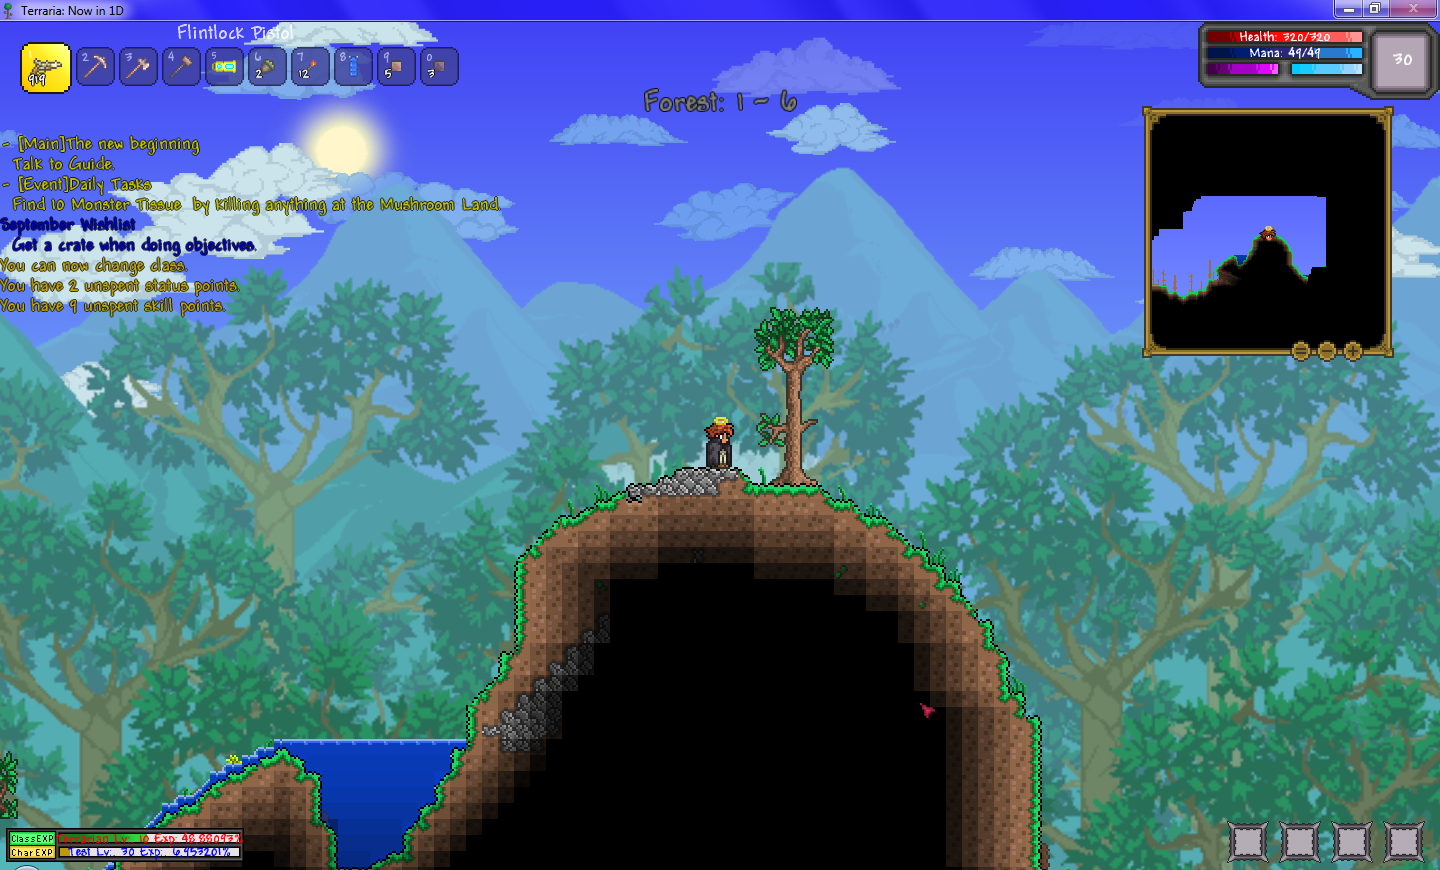 Standalone - N Terraria Mod: RPG, Races, Classes, Quests, and other